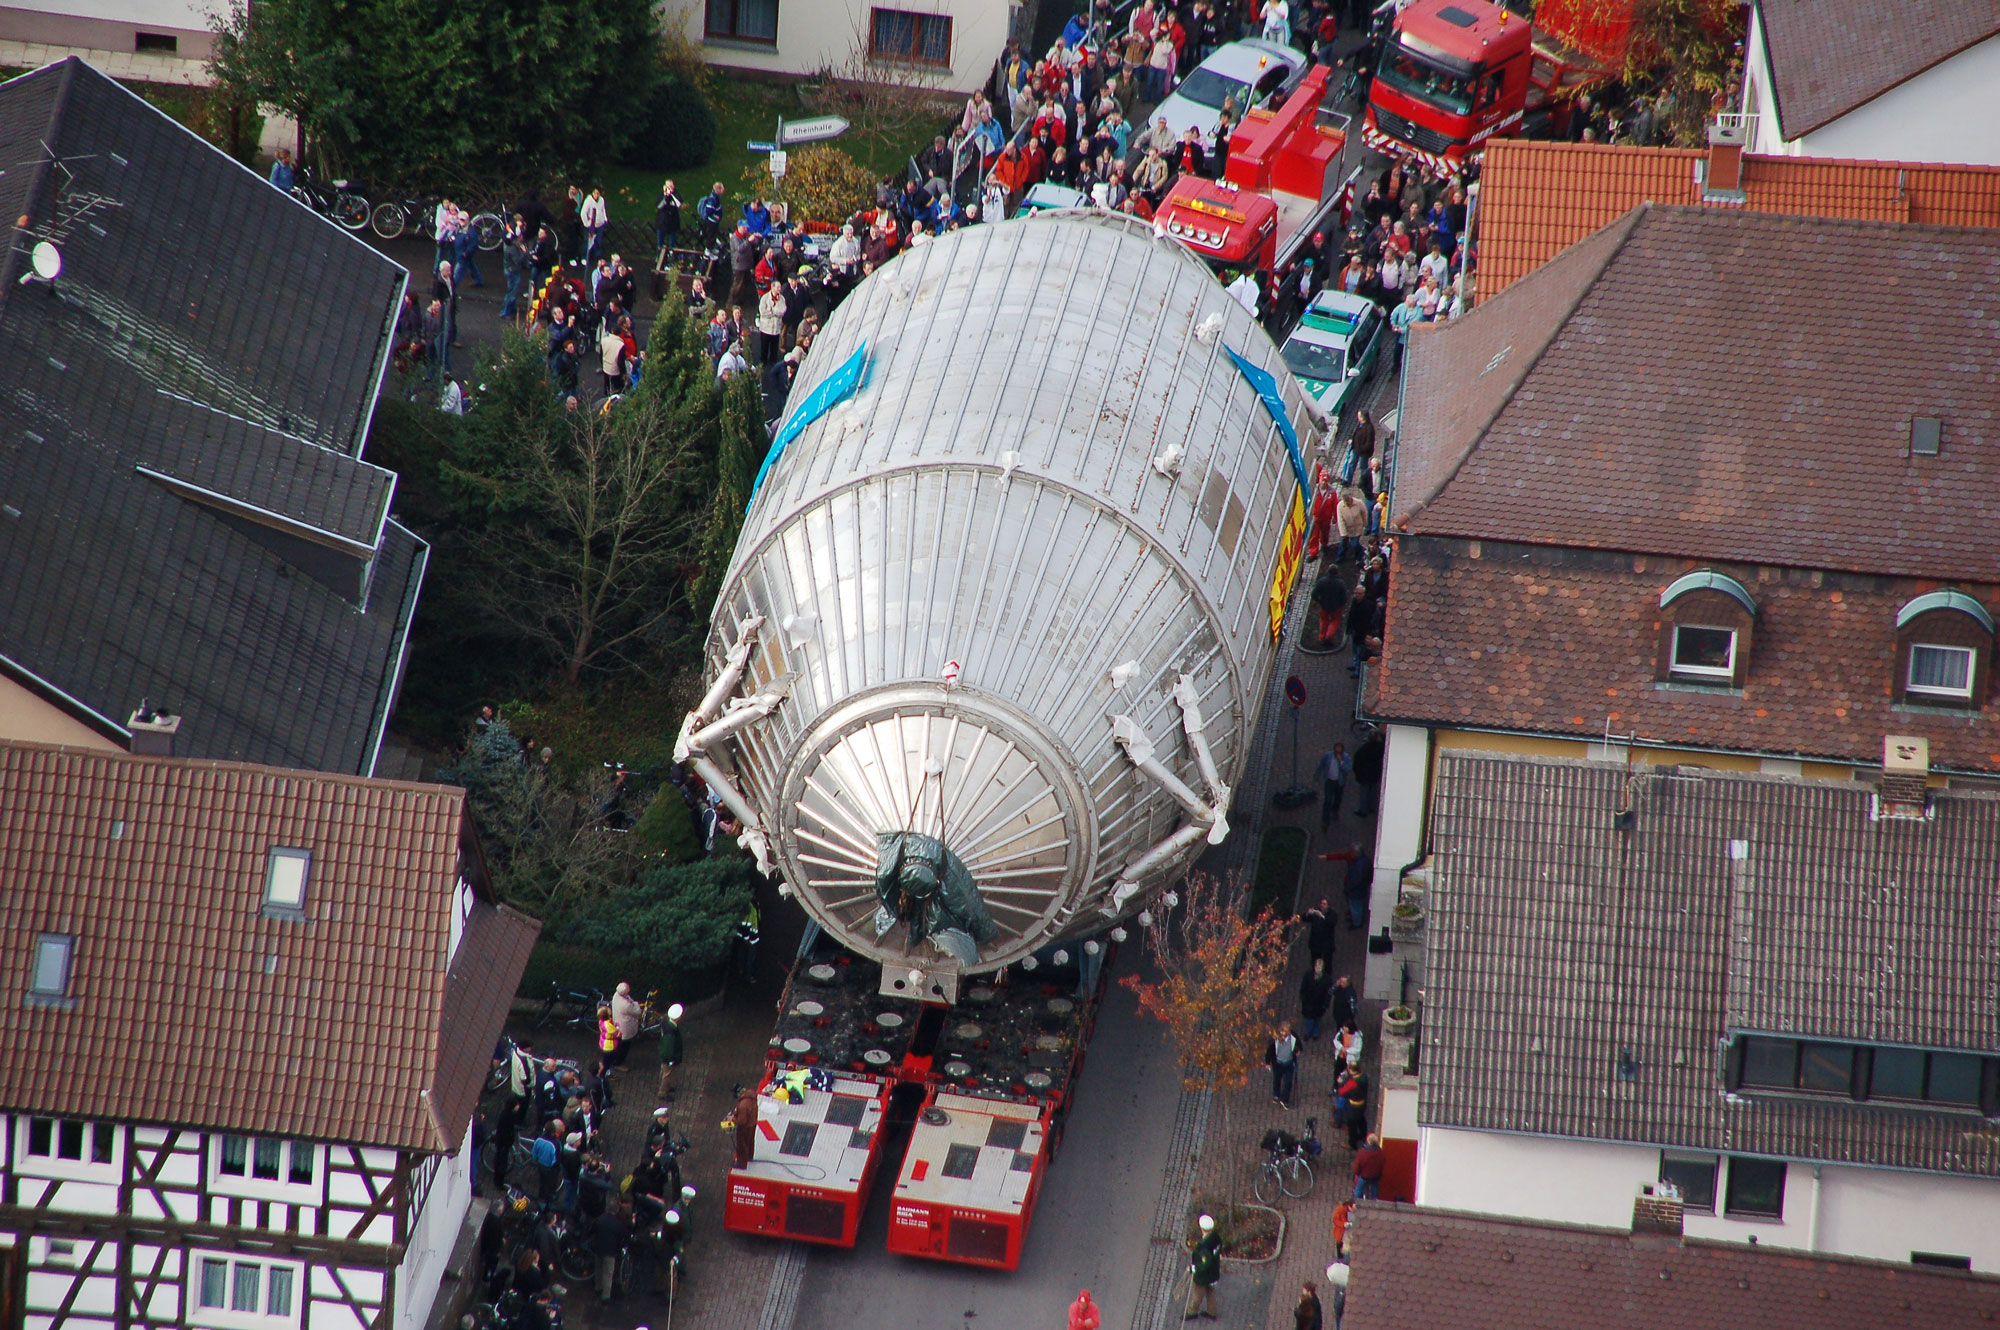 A large, egg-shaped metallic structure is seen from above as red emergency vehicles transport it through a quaint European village.